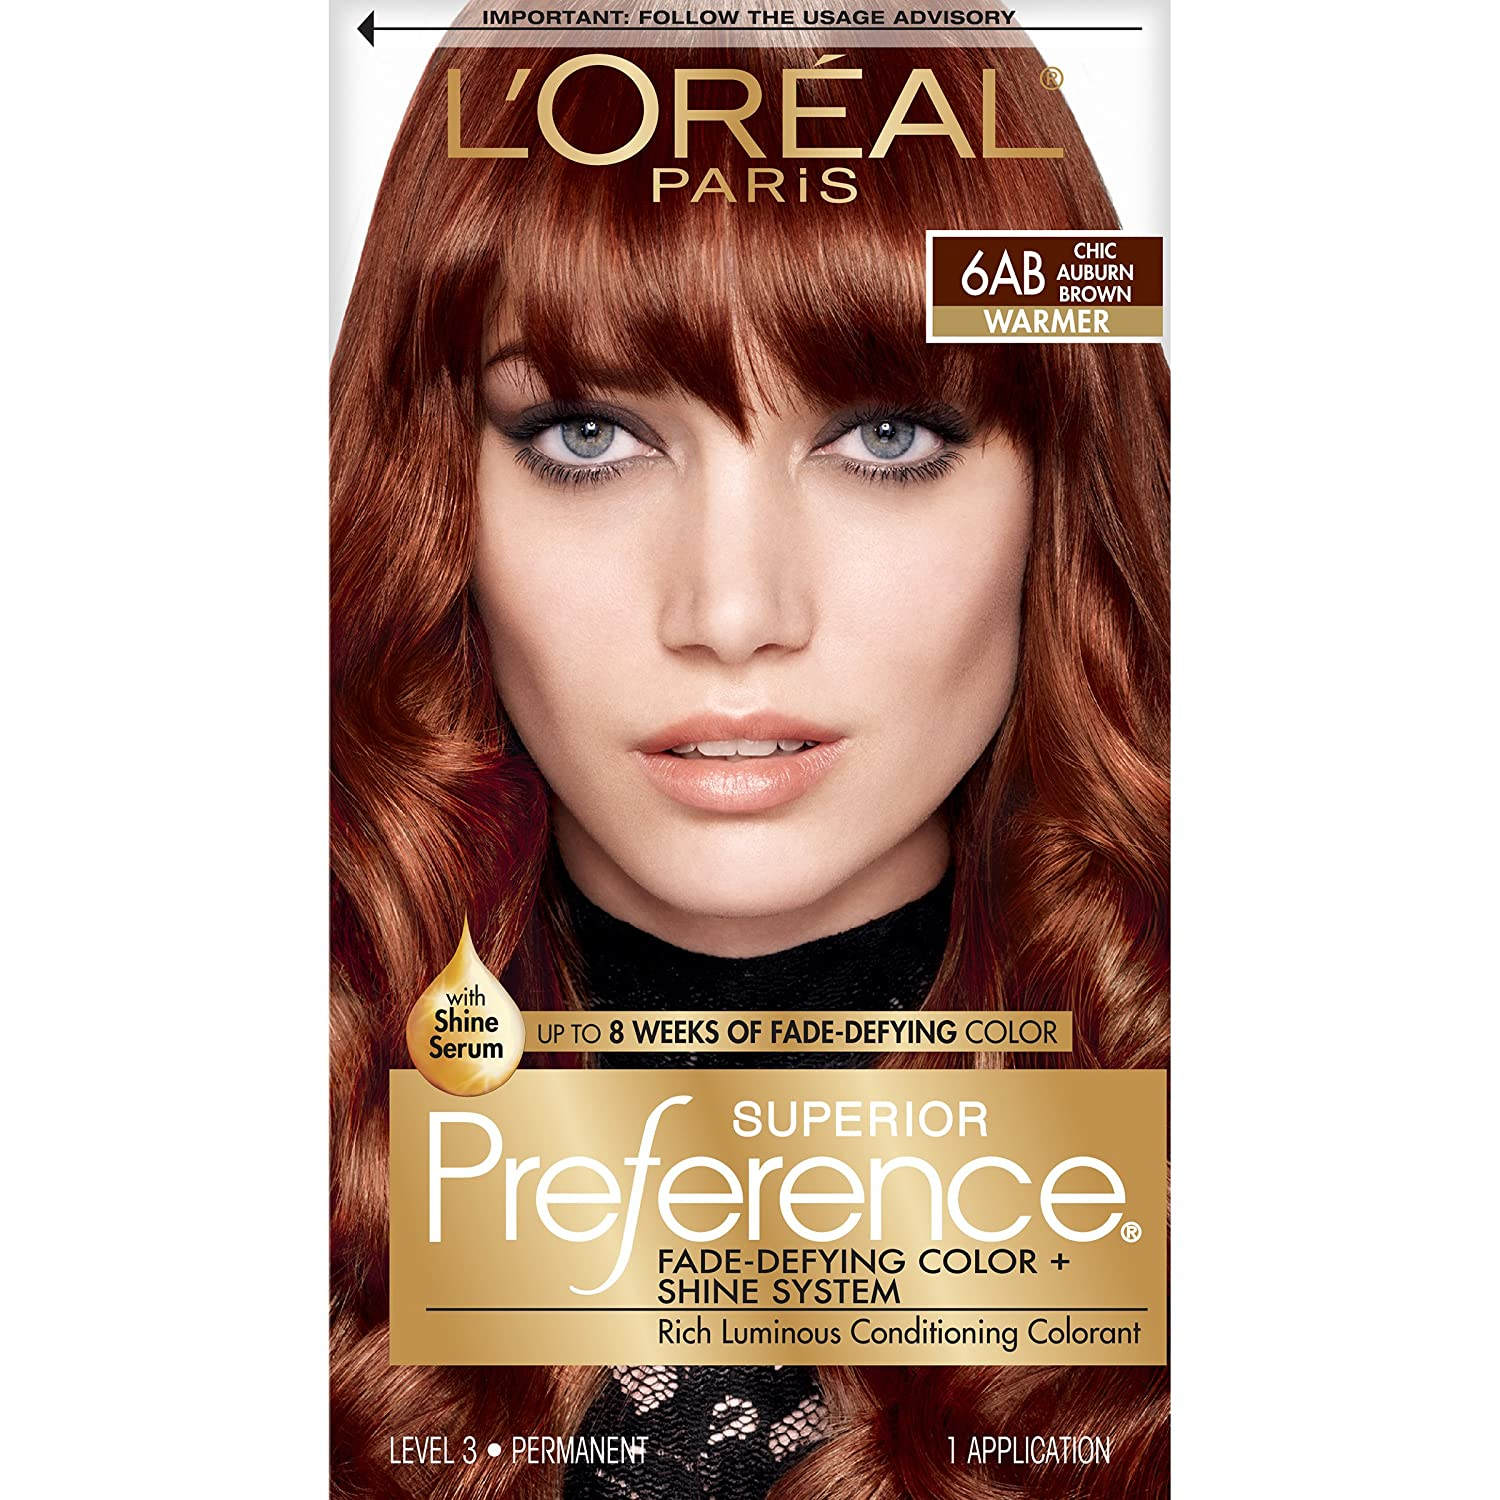 The look at home using l oreal paris feria smokey pastels in p2 smokey - Buy Preference Chic Auburn Brown 1 Count L Oreal Paris Superior Preference Fade Defying Color Shine System 6ab Chic Auburn Brown Packaging May Vary